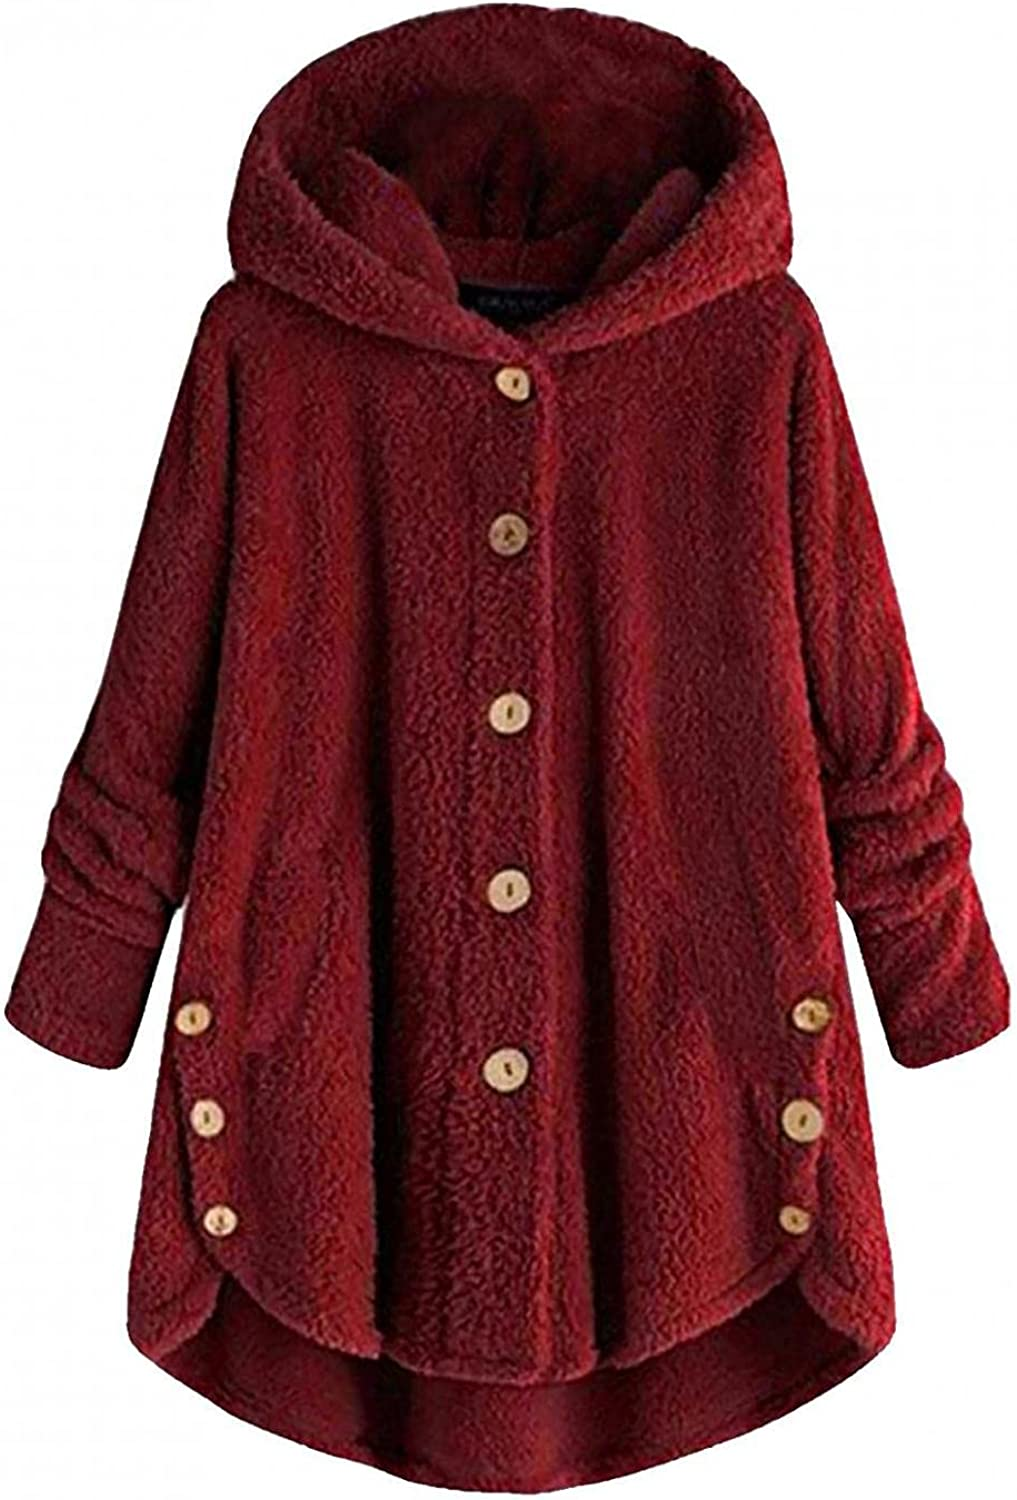 Womens Thigh Length Winter Jacket Button Size Wool Max 46% OFF Fixed price for sale Flu Plus Coat